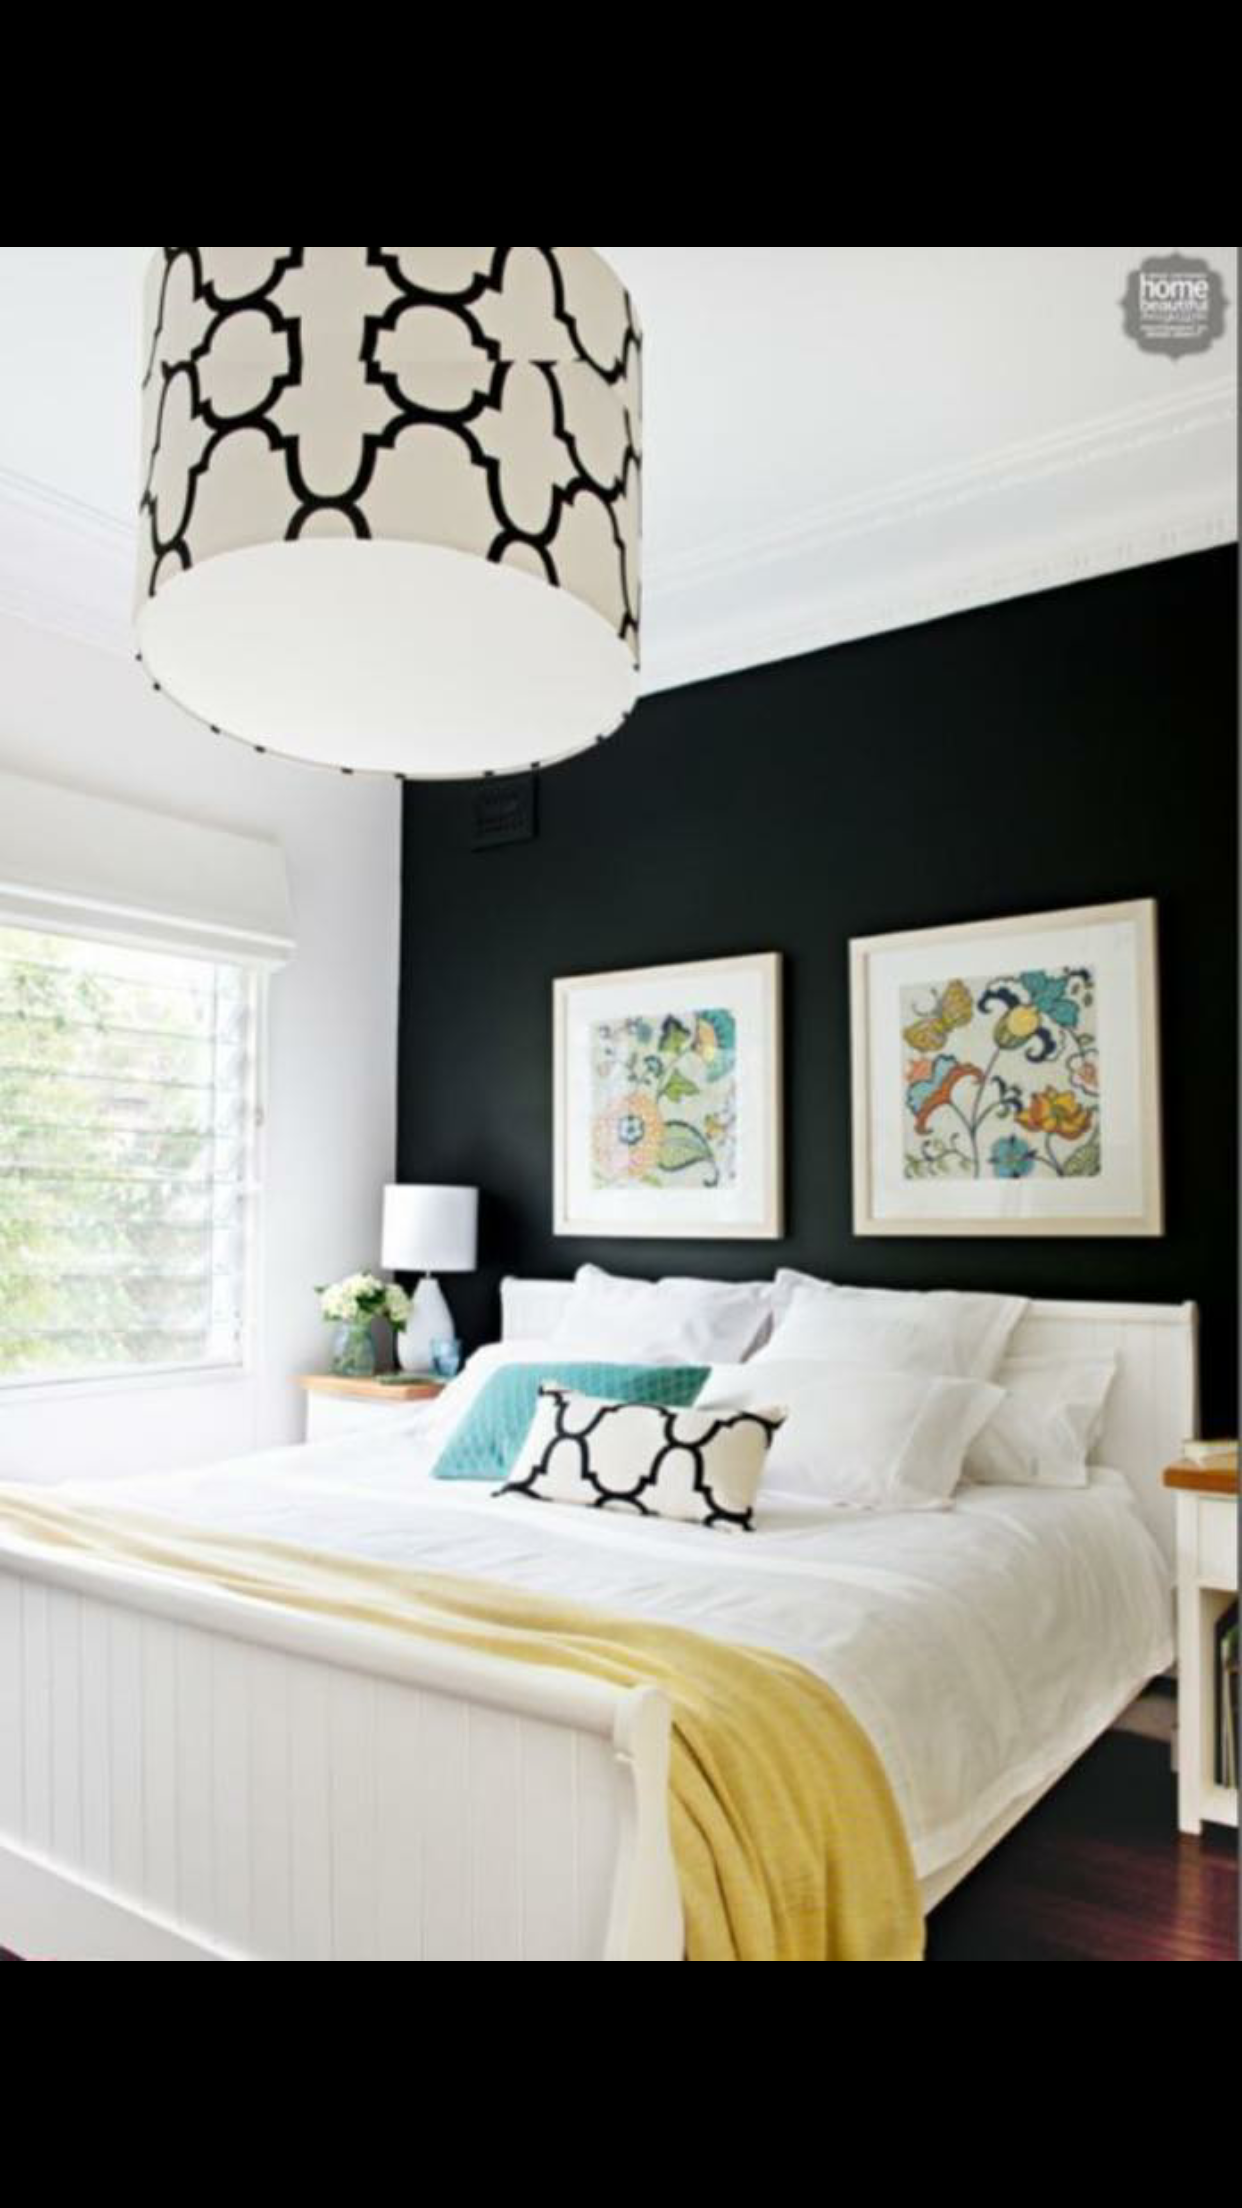 Master bedroom images  Pin by Laken Patin on Future Homes  Pinterest  Bedrooms and Future